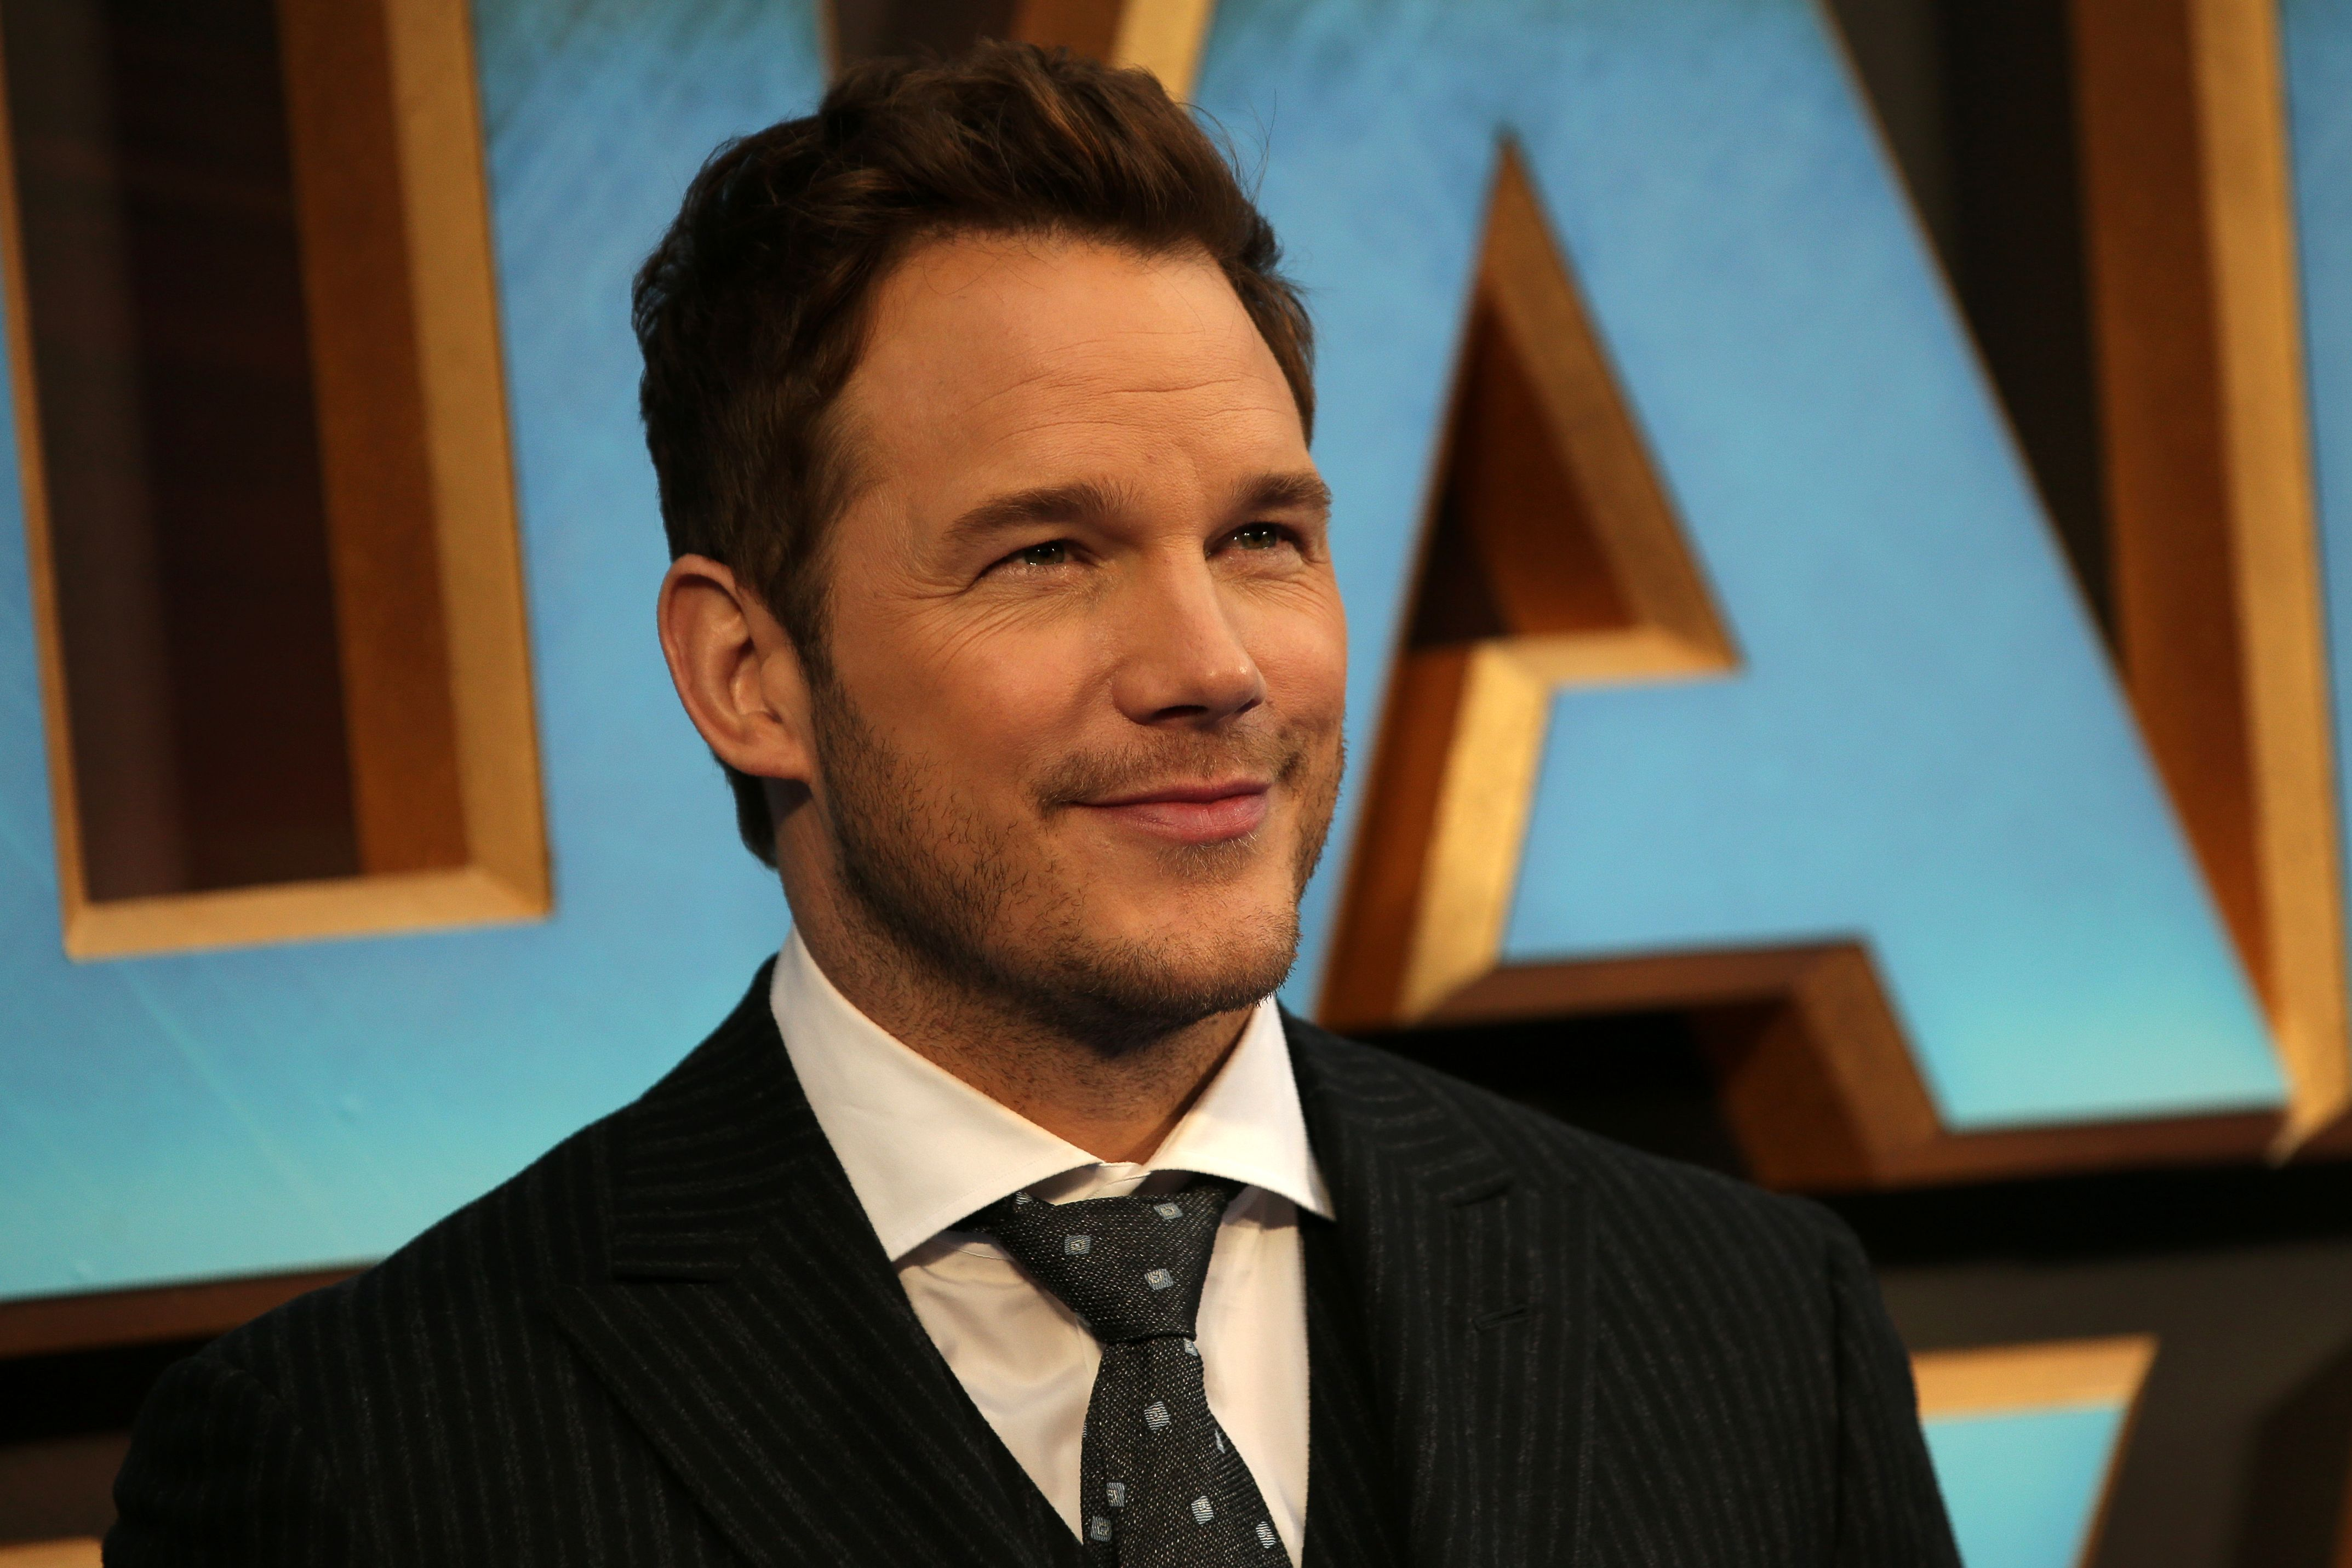 Chris Pratt 'Guardians of the Galaxy' Premiere